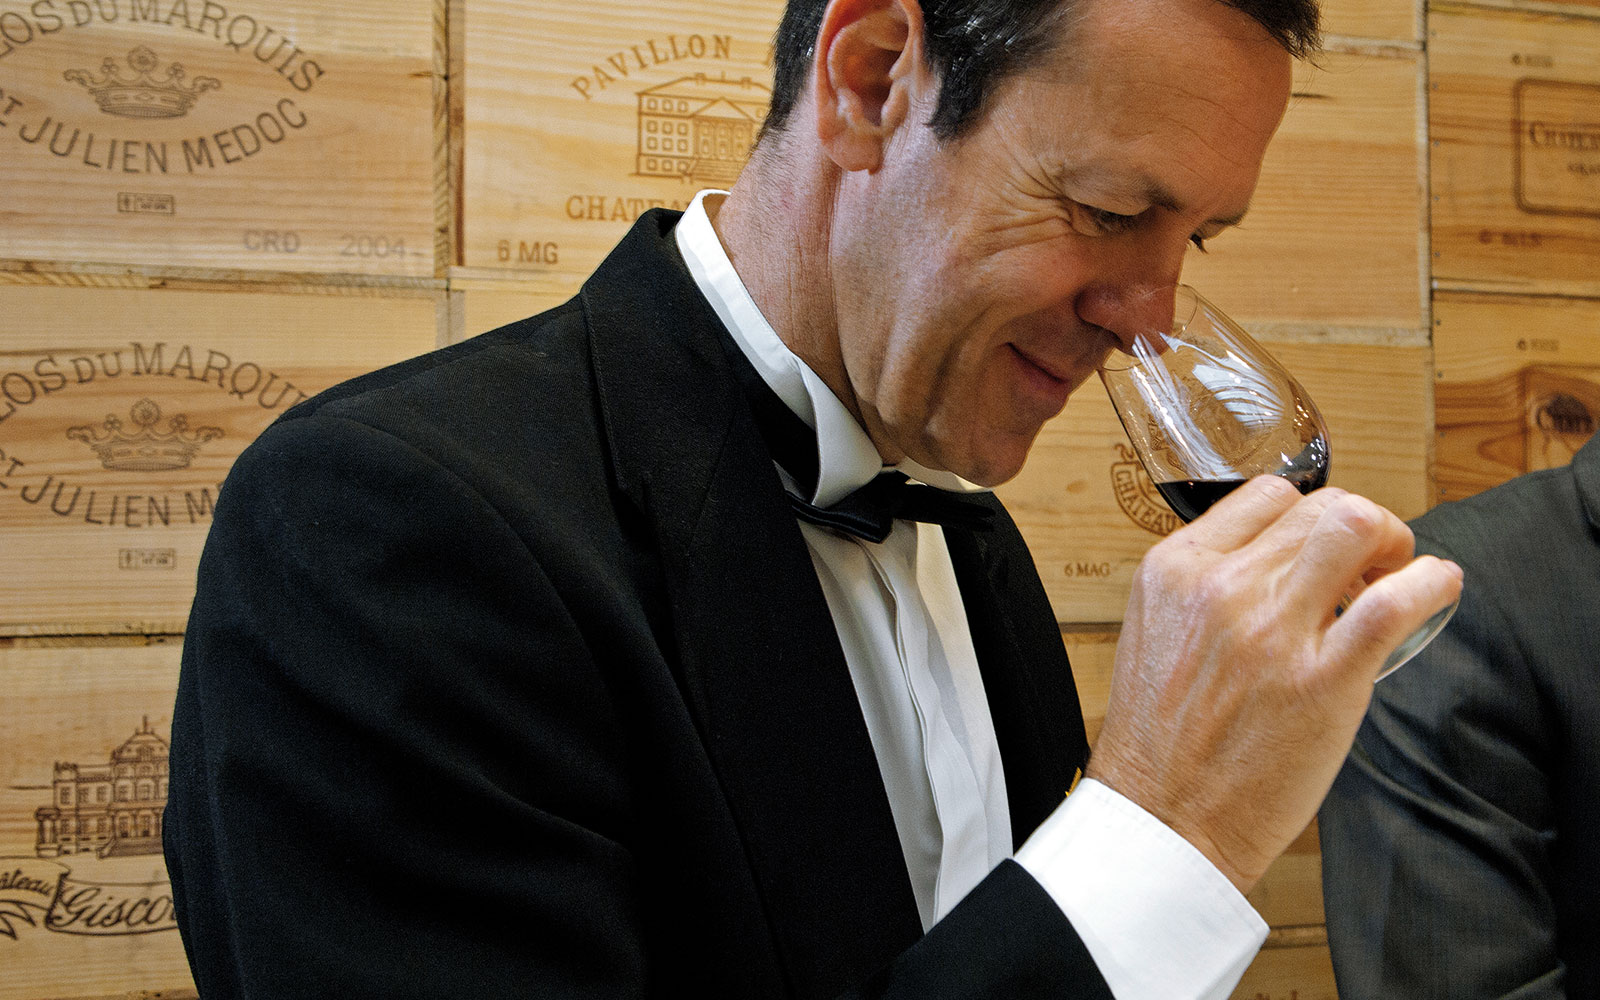 Chief Sommelier Patrice Frank